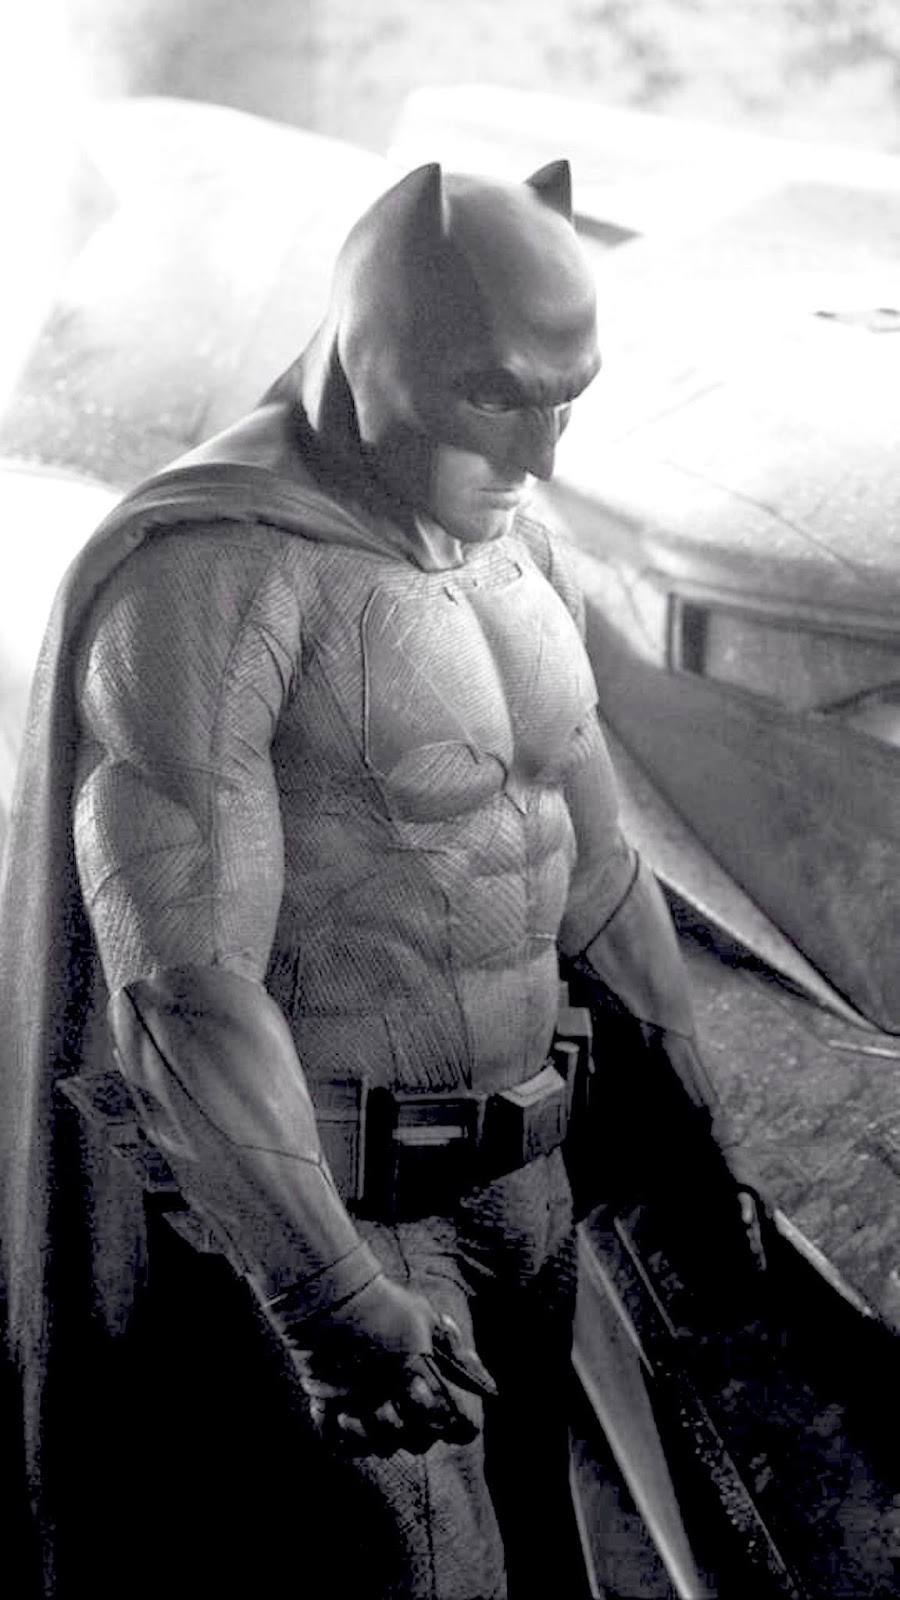 "Director Zack Snyder revealed the black-and-white photo Tuesday on Twitter.         @ZackSnyder/Twitter     The first image of Ben Affleck as Batman in the upcoming Superman-Batman film has hit the web.  * This image has been altered to allow better exposure of the rest of the suit. Looks prety cool.   -GeekSummit  Director Zack Snyder unveiled the photo via Twitter on Tuesday, after teasing the day before that a Batman reveal of some sort was coming.  The monochromatic image features Affleck in the Batsuit with the new Batmobile at his side, as smoke looms in the background.     Affleck was cast in the role last August and the announcement was met with mixed reaction. (Snyder said at the time that Affleck's Batman would be ""older and wiser."") In response to Internet backlash, Affleck appeared on Late Night in September to address worries. ""They said just don't use the Internet for a couple of days,"" Affleck said at the time. ""I handle shit. I'm very tough. I saw the announcement, I look down on the first comment … the first one just goes, 'Nooooooooo!' ""  Snyder's Superman-Batman follow-up will return Henry Cavill, who starred in Man of Steel, as Superman. Gal Gadot will play Wonder Woman, Jesse Eisenberg has been cast as Lex Luthor, Jeremy Irons is set as Alfred and Ray Fisher will portray Victor Stone/Cyborg. Holly Hunter, Callan Mulvey and Tao Okamoto are also in the cast and will play newly created characters.  Affleck, Cavill and Gadot are expected to reprise their roles for the Justice League movie, which will also be directed by Snyder and have a 2017 release.  Warner Bros. has slated the Batman-Superman tentpole for May 6, 2016     Source: Hollywood Reporter"